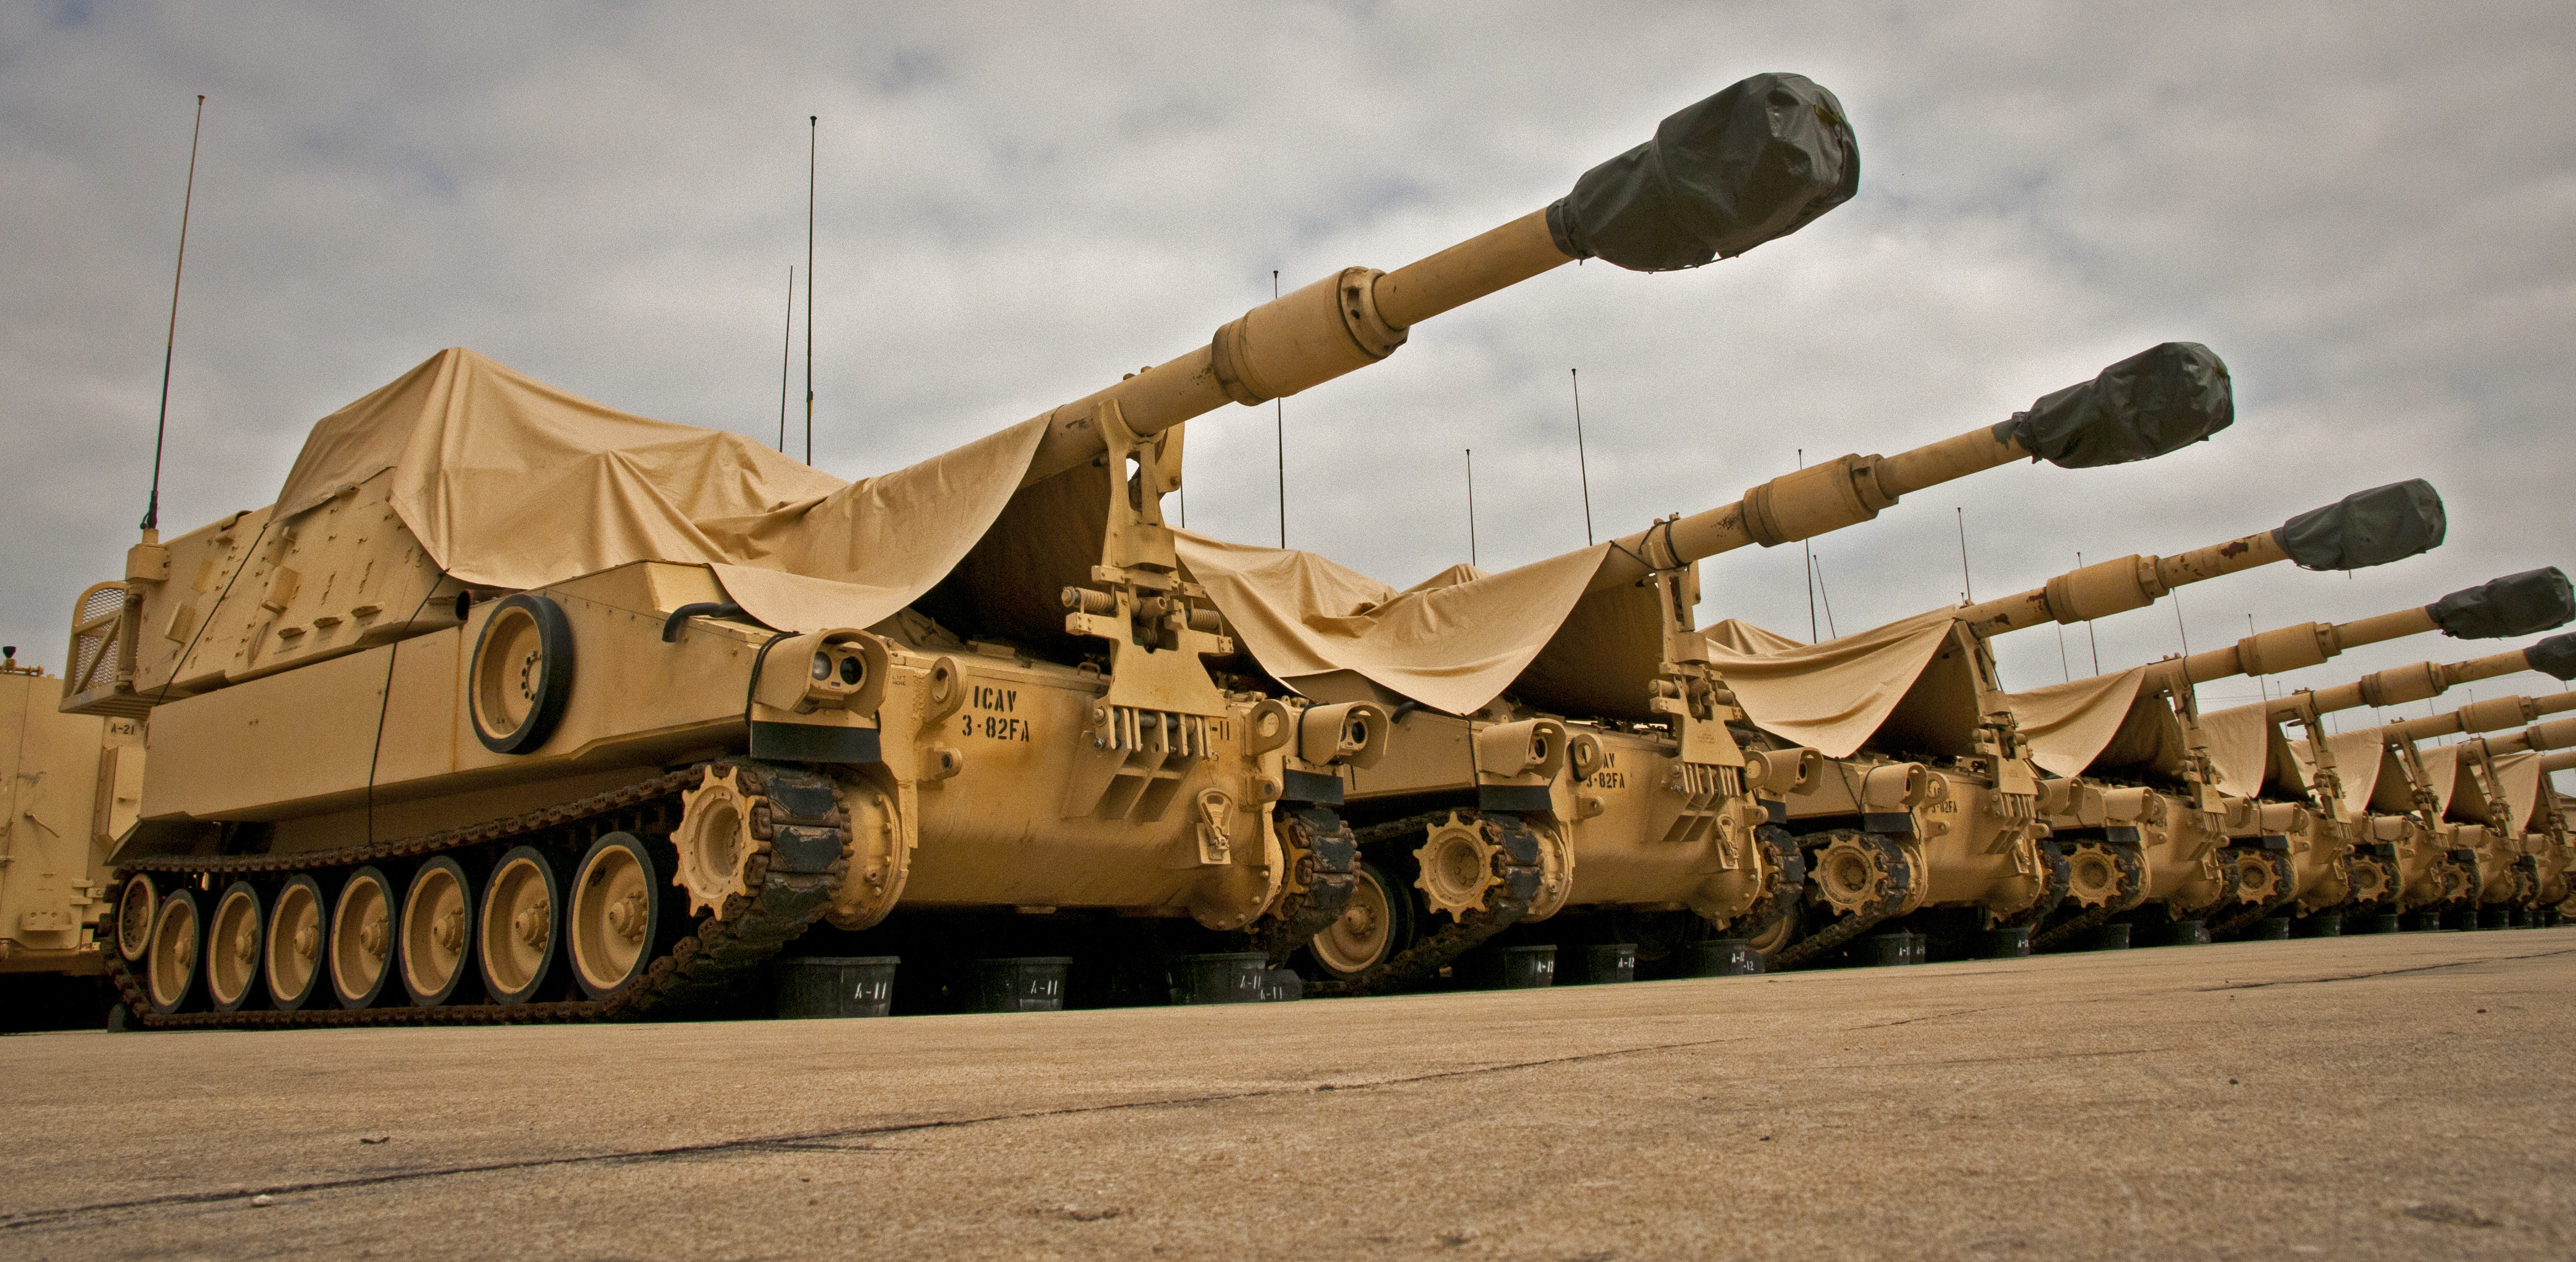 M109A6 Paladin howitzers are seen under a cloudy sky at the 3rd Battalion, 82nd Field Artillery Regiment motor pool at Fort Hood, Texas on March 22, 2013. US Army Photo